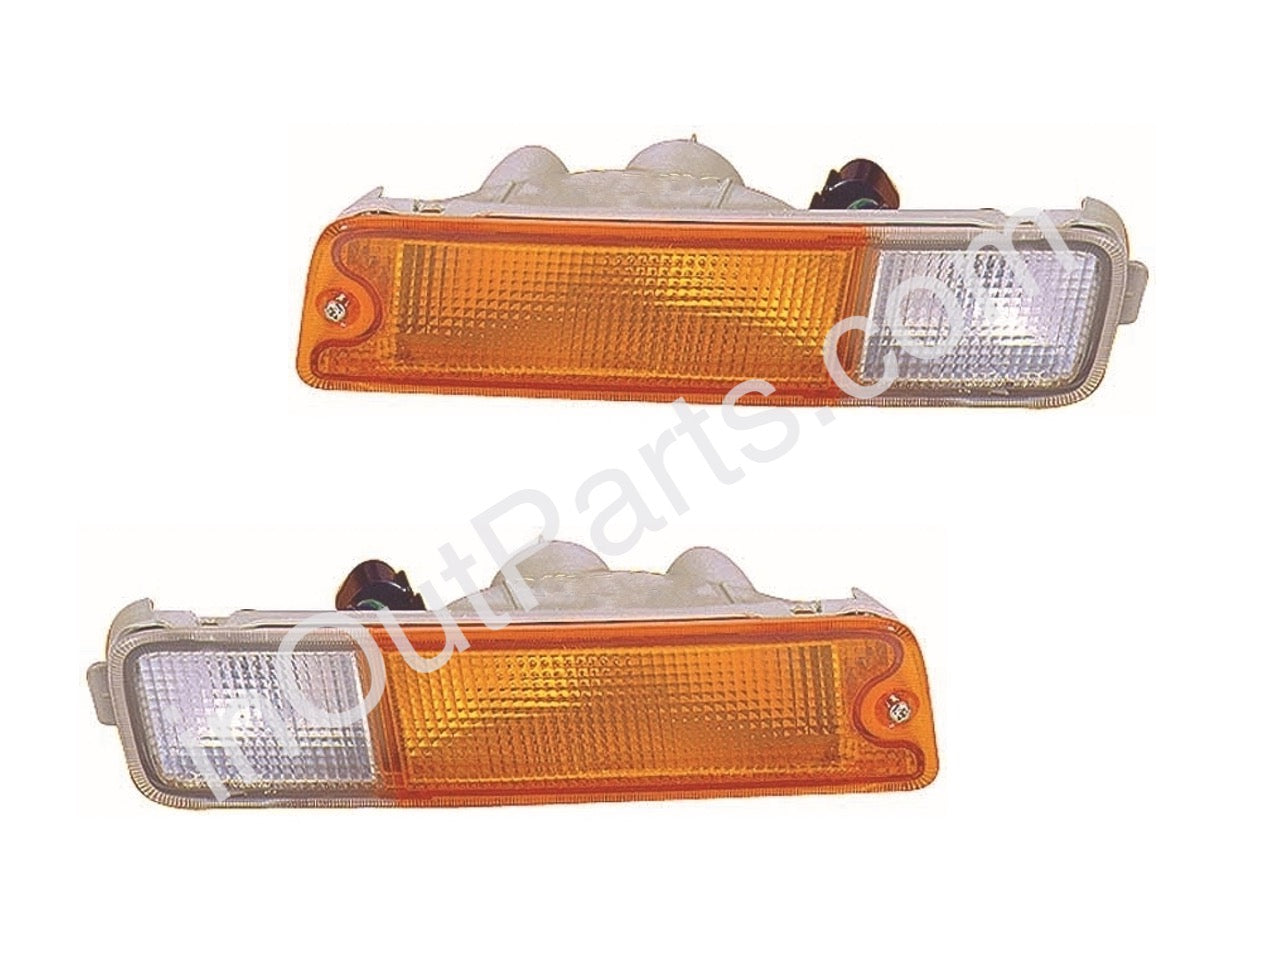 FRONT WING SIDE INDICATOR REPEATER LAMP LIGHT for L200 2.5 TD K74 2001-2006